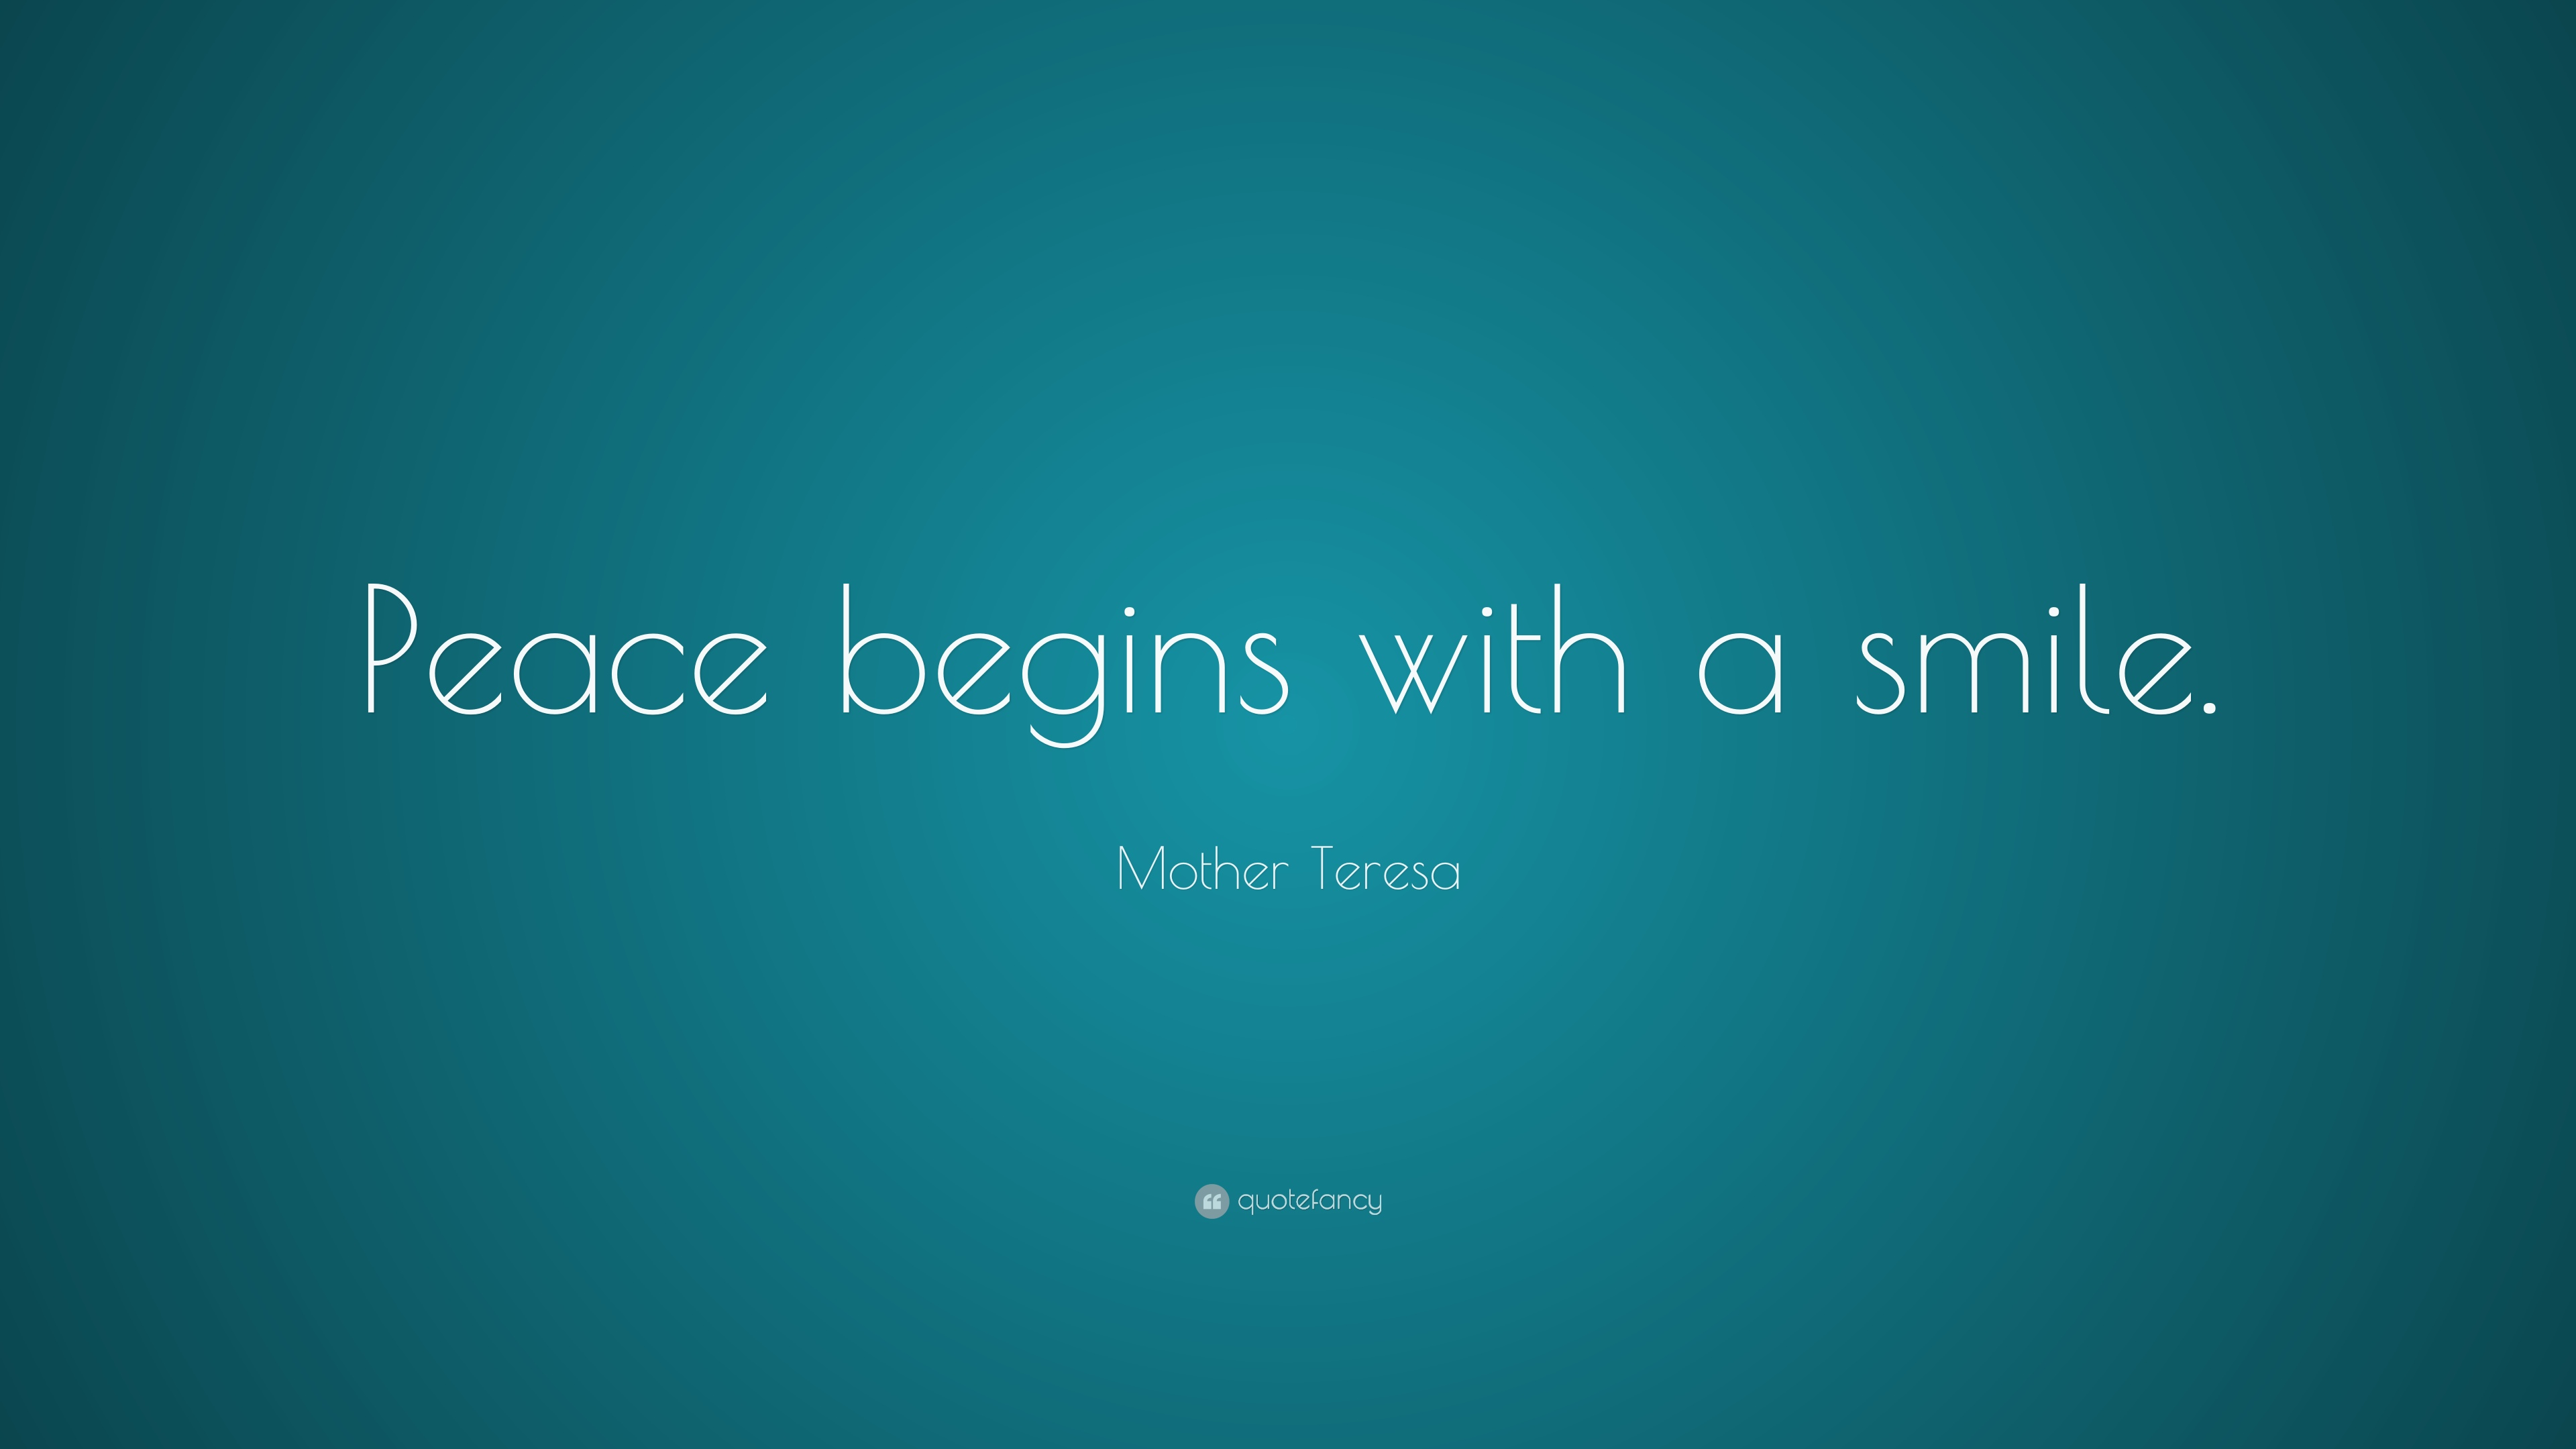 Mother Teresa Quotes Wallpaper 20